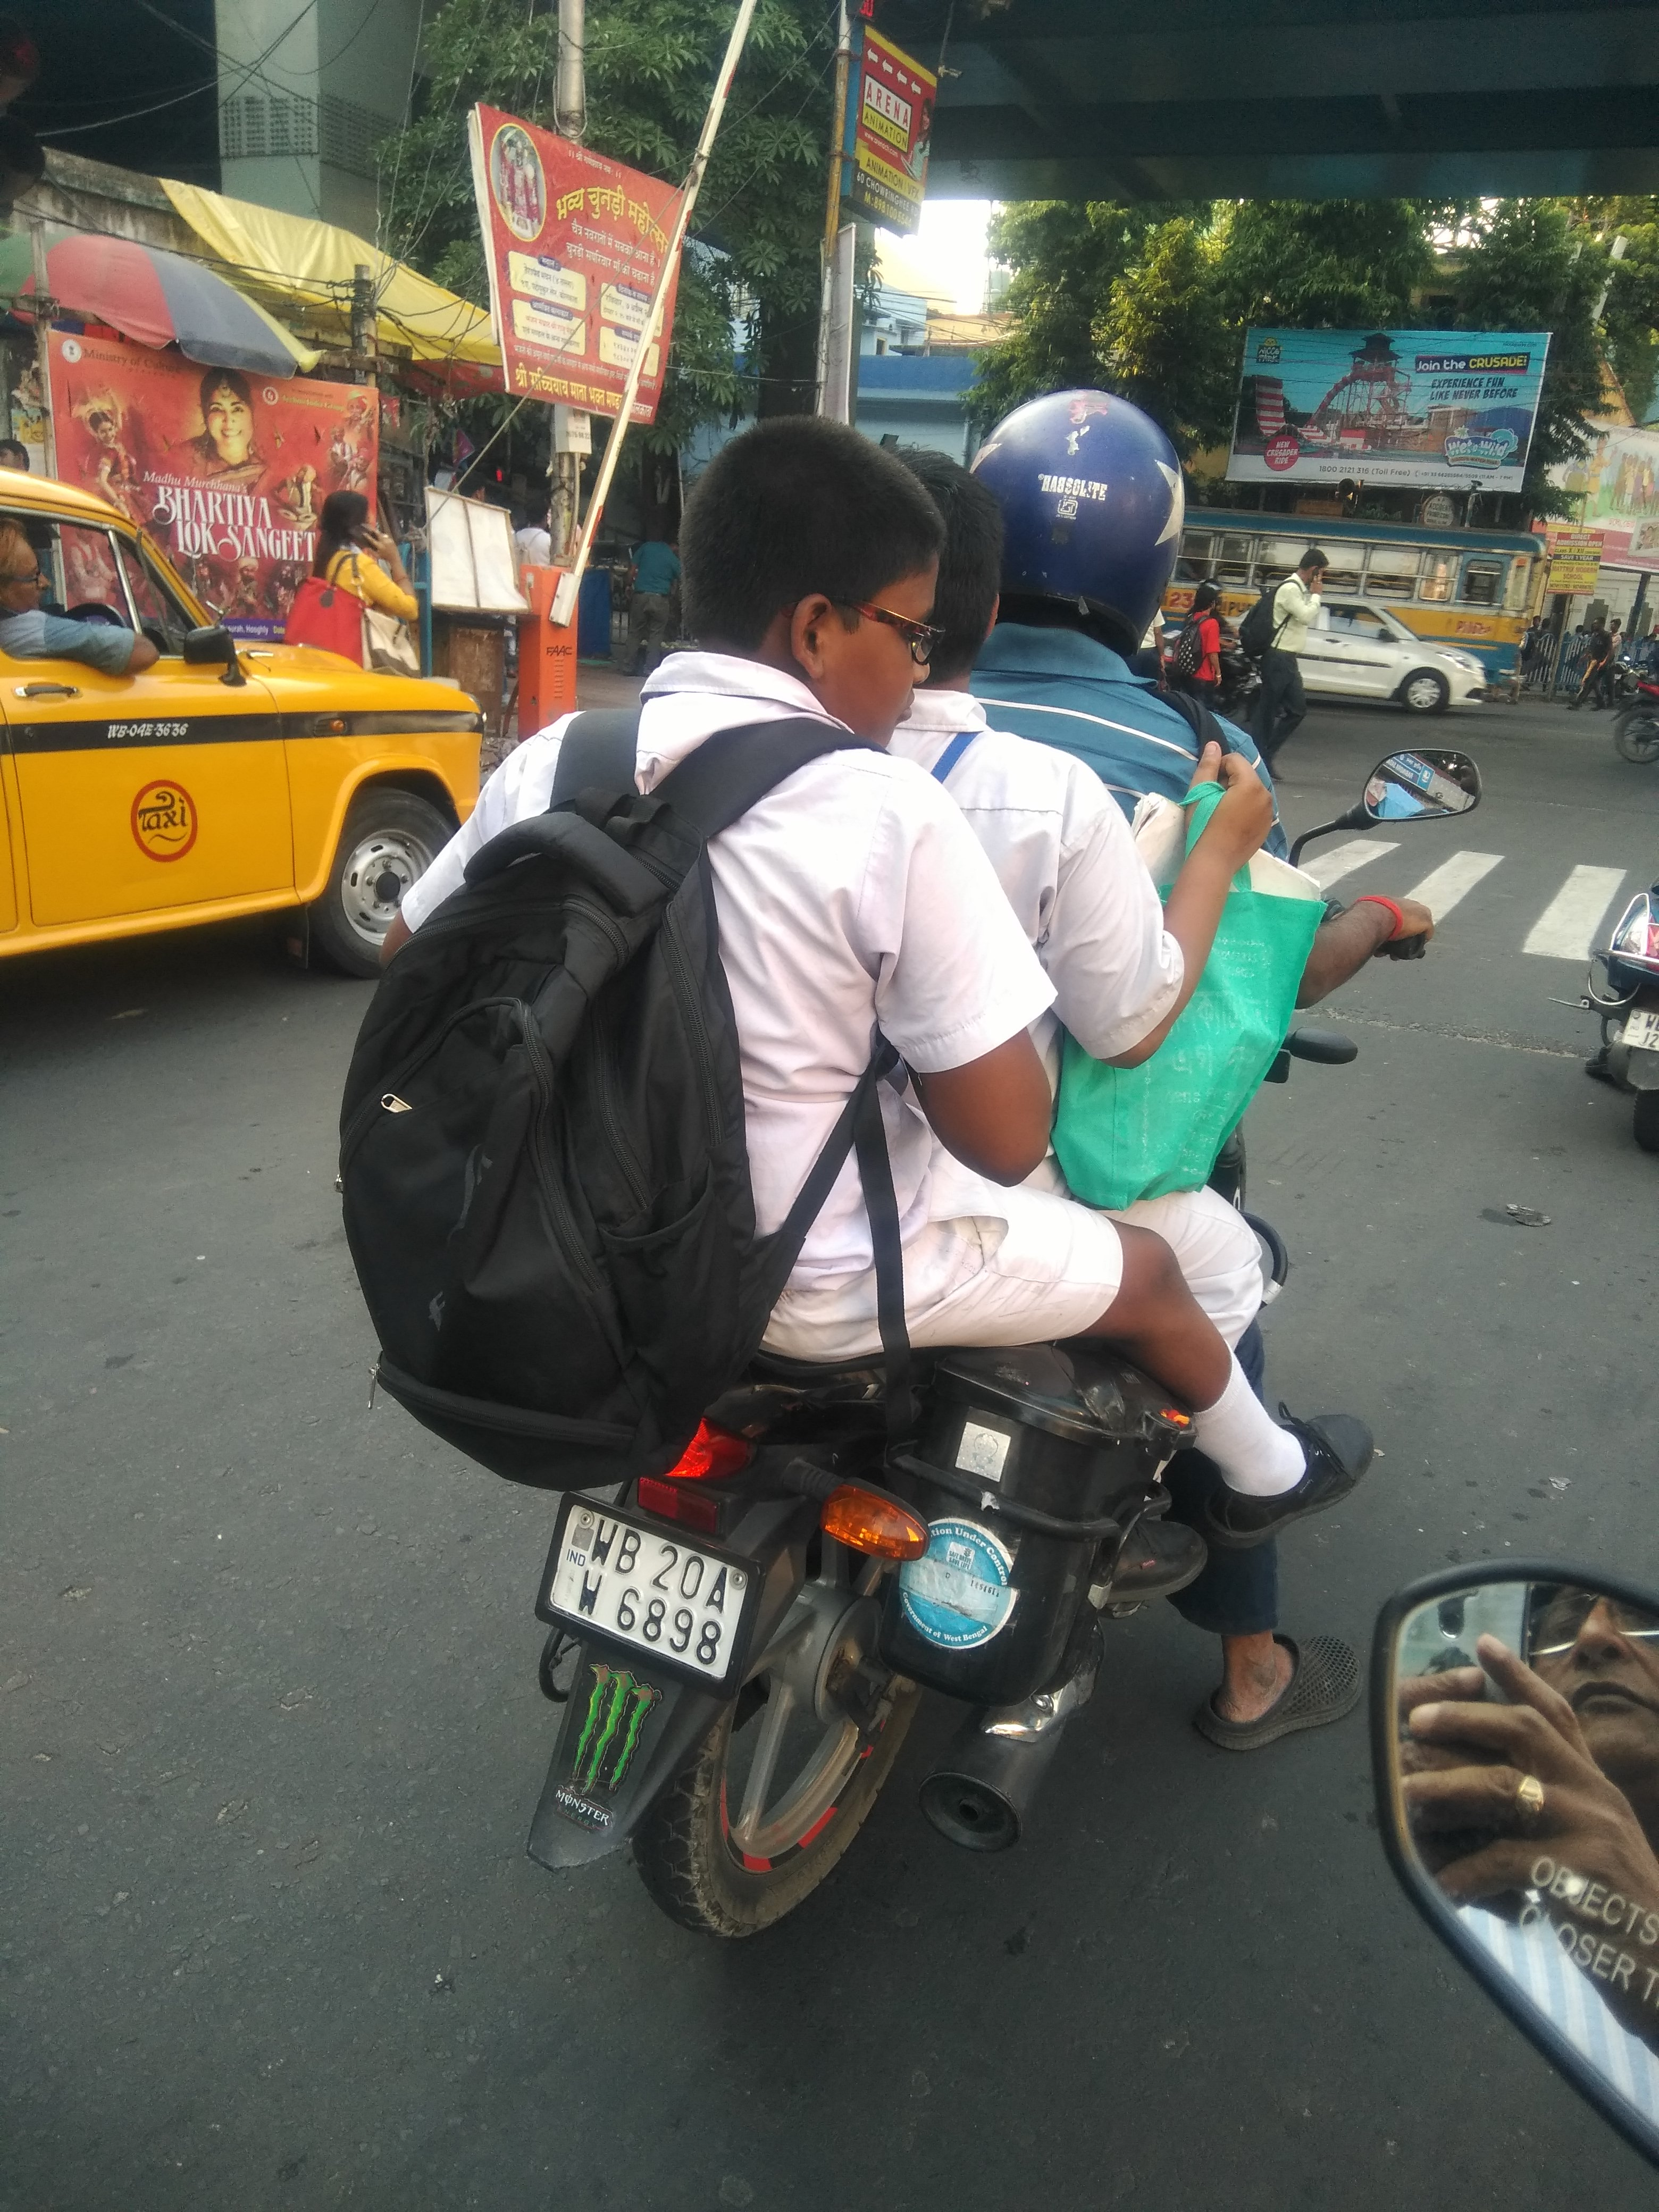 Riding Without Helmets Is Risky And Punishable